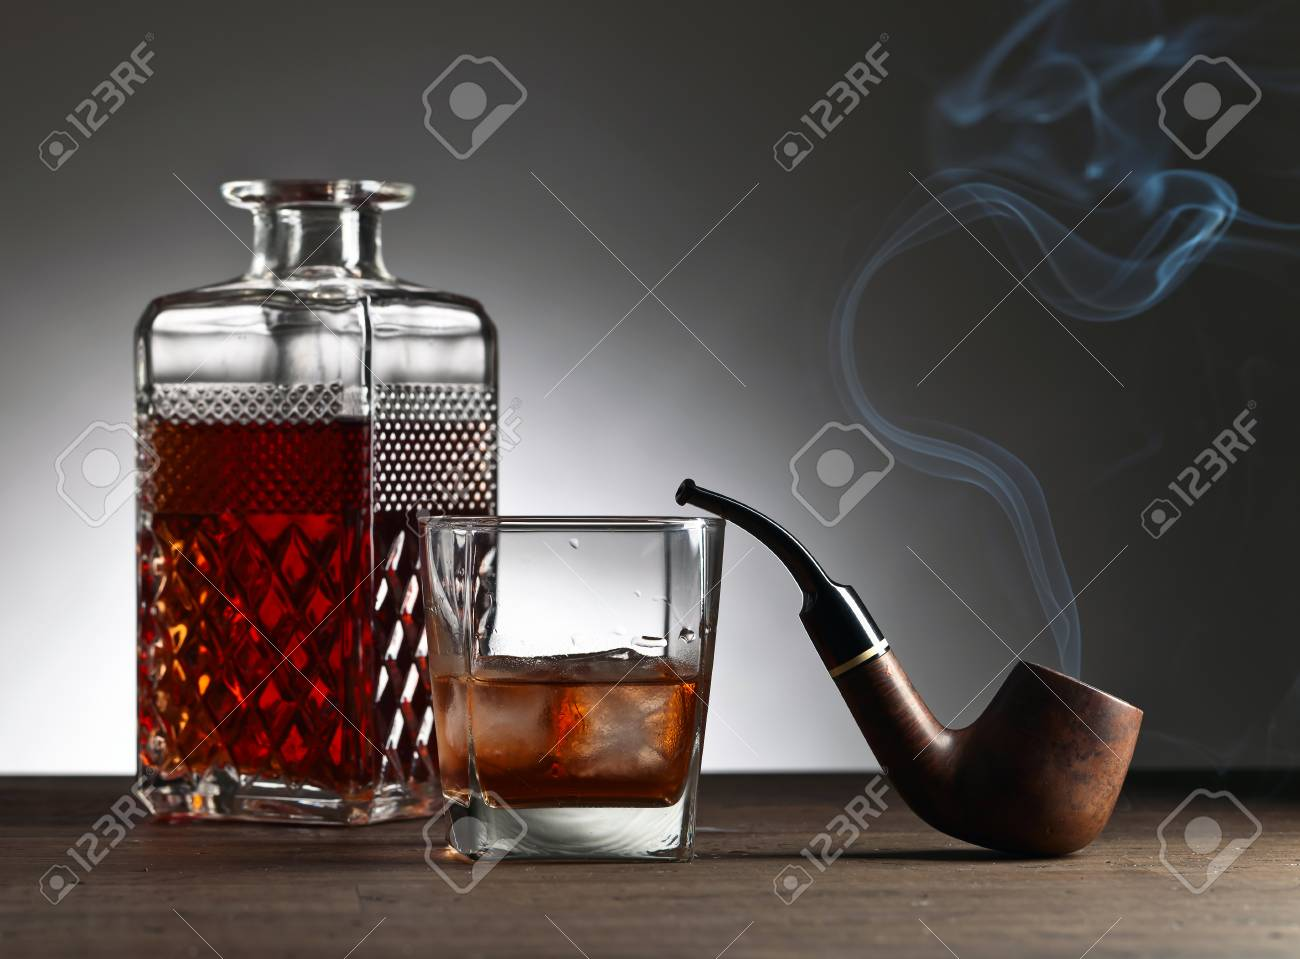 Glass of whiskey and pipe on a old wooden table